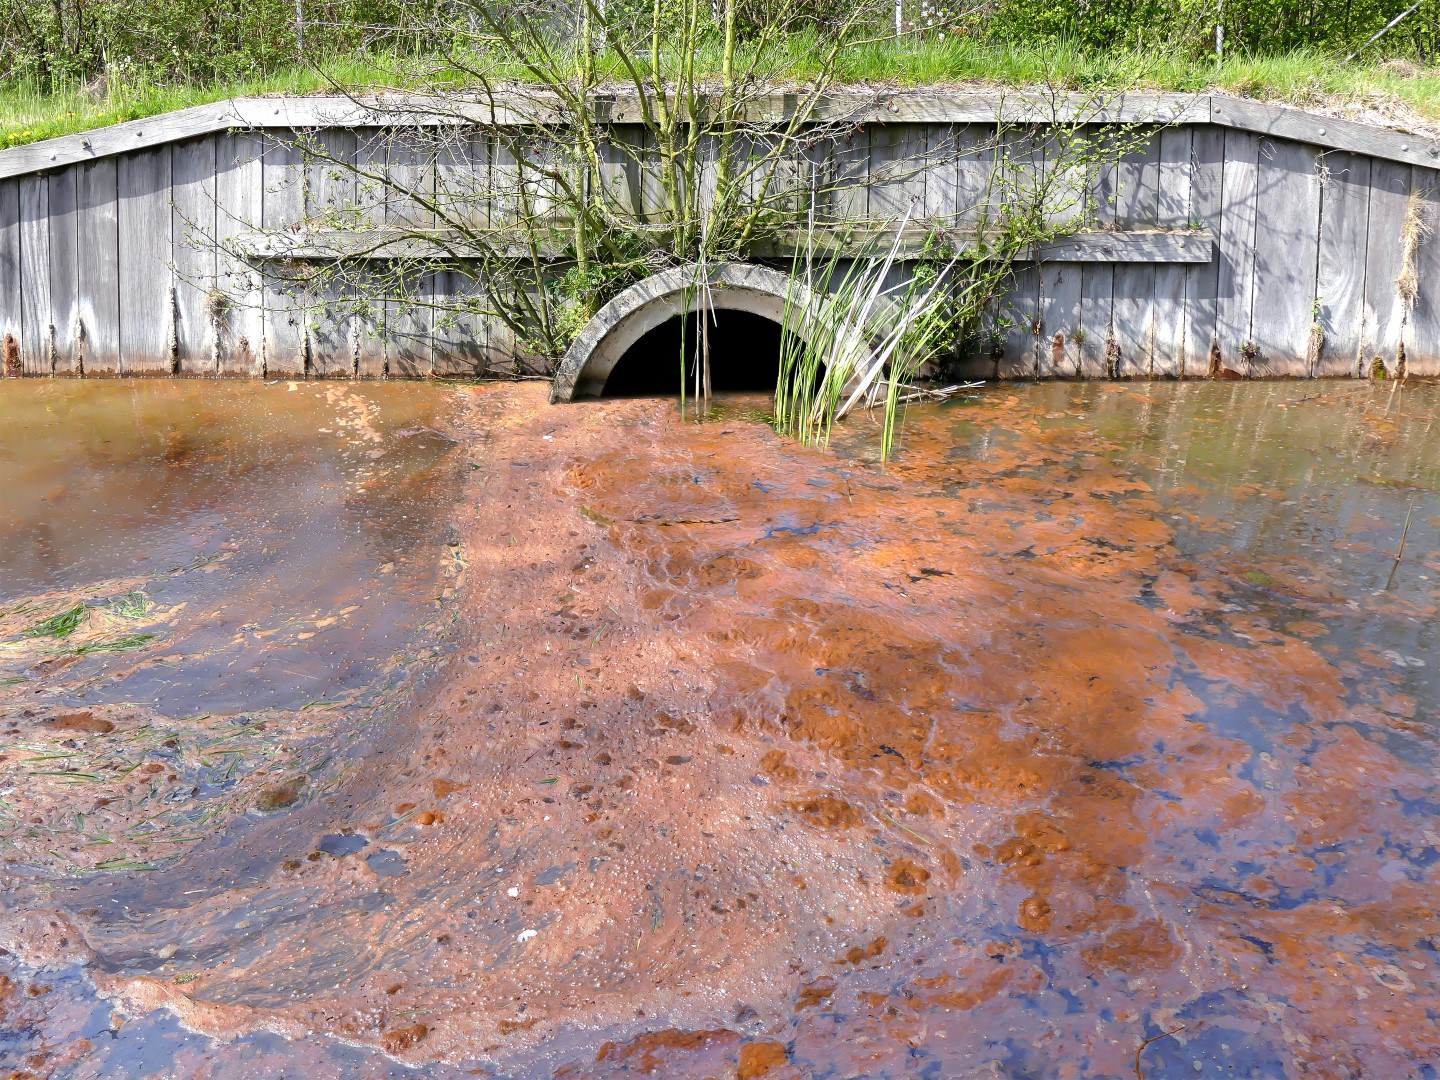 Image from SaintPetersburgBlog.com: http://saintpetersblog.com/environmental-groups-sue-gulfport-sewage-overflows/